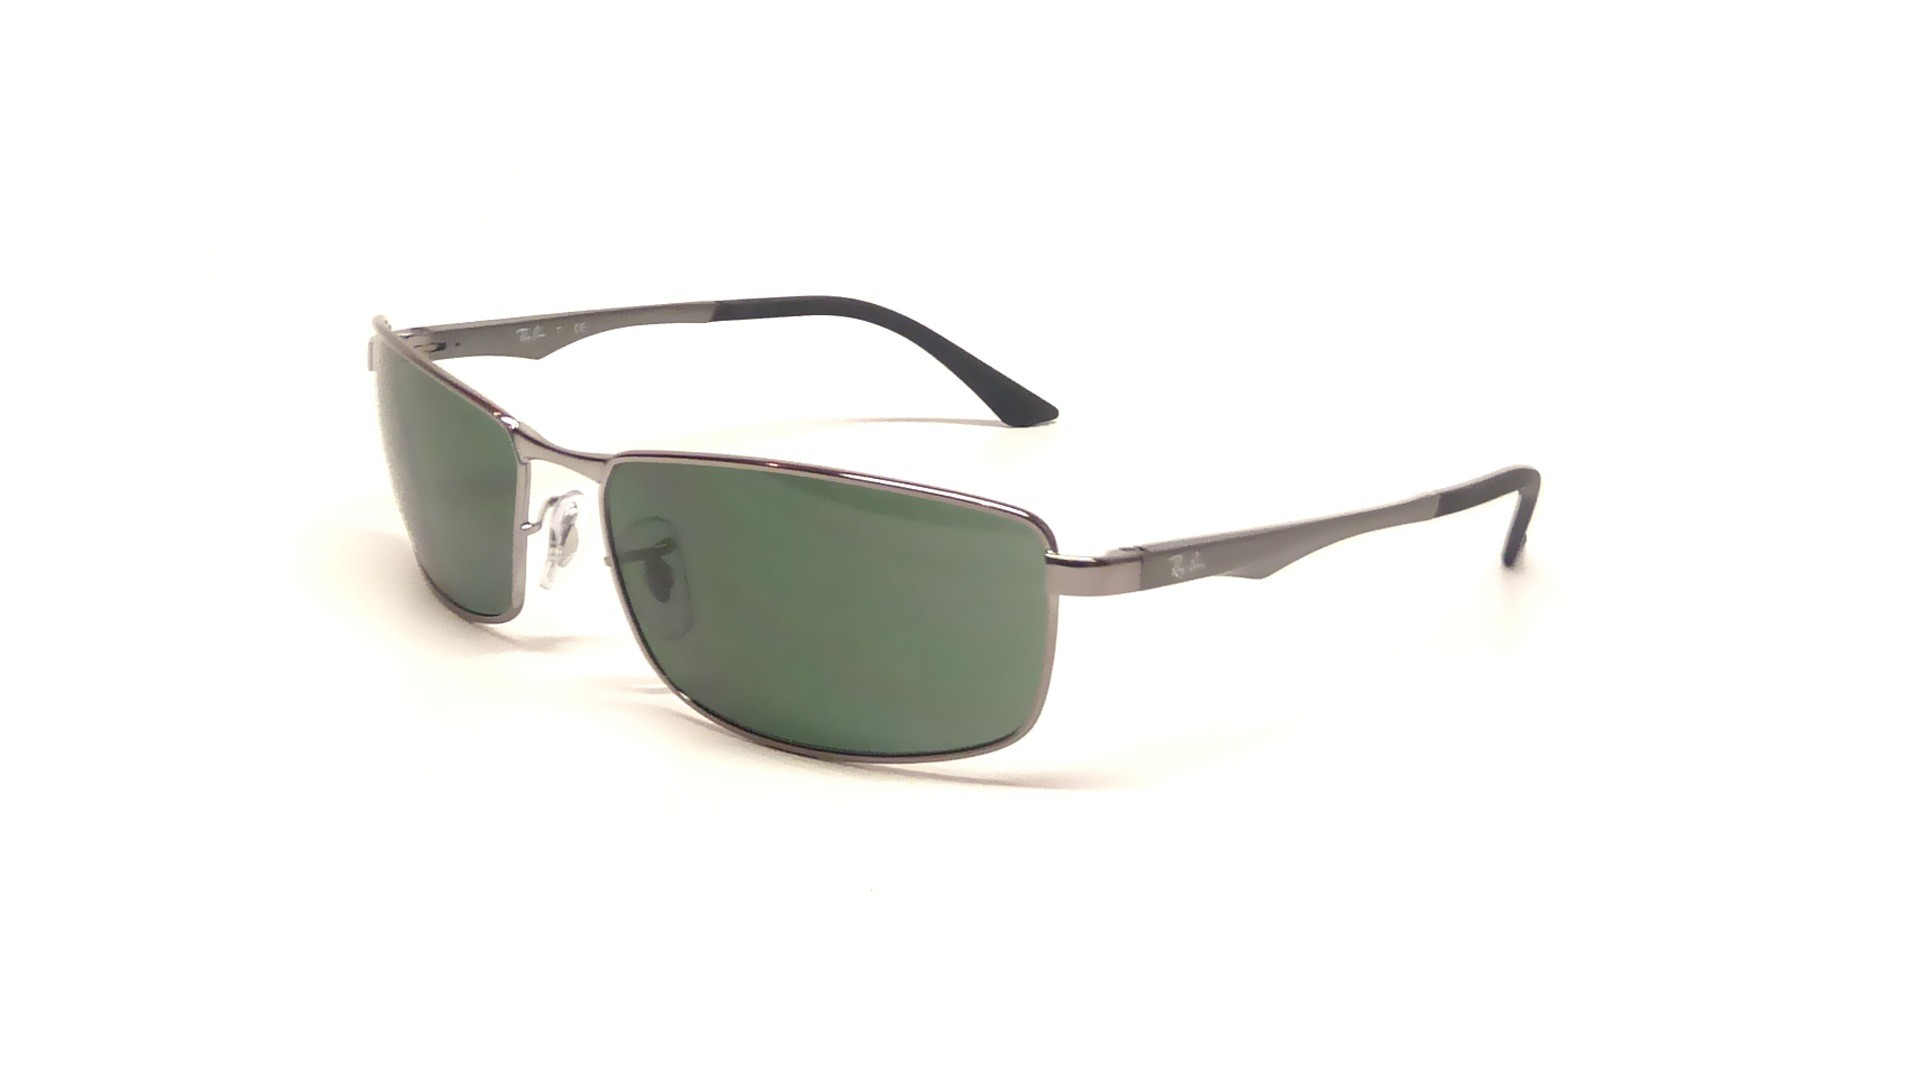 Ray Ban RB3498 00471 64 17 Silver Large